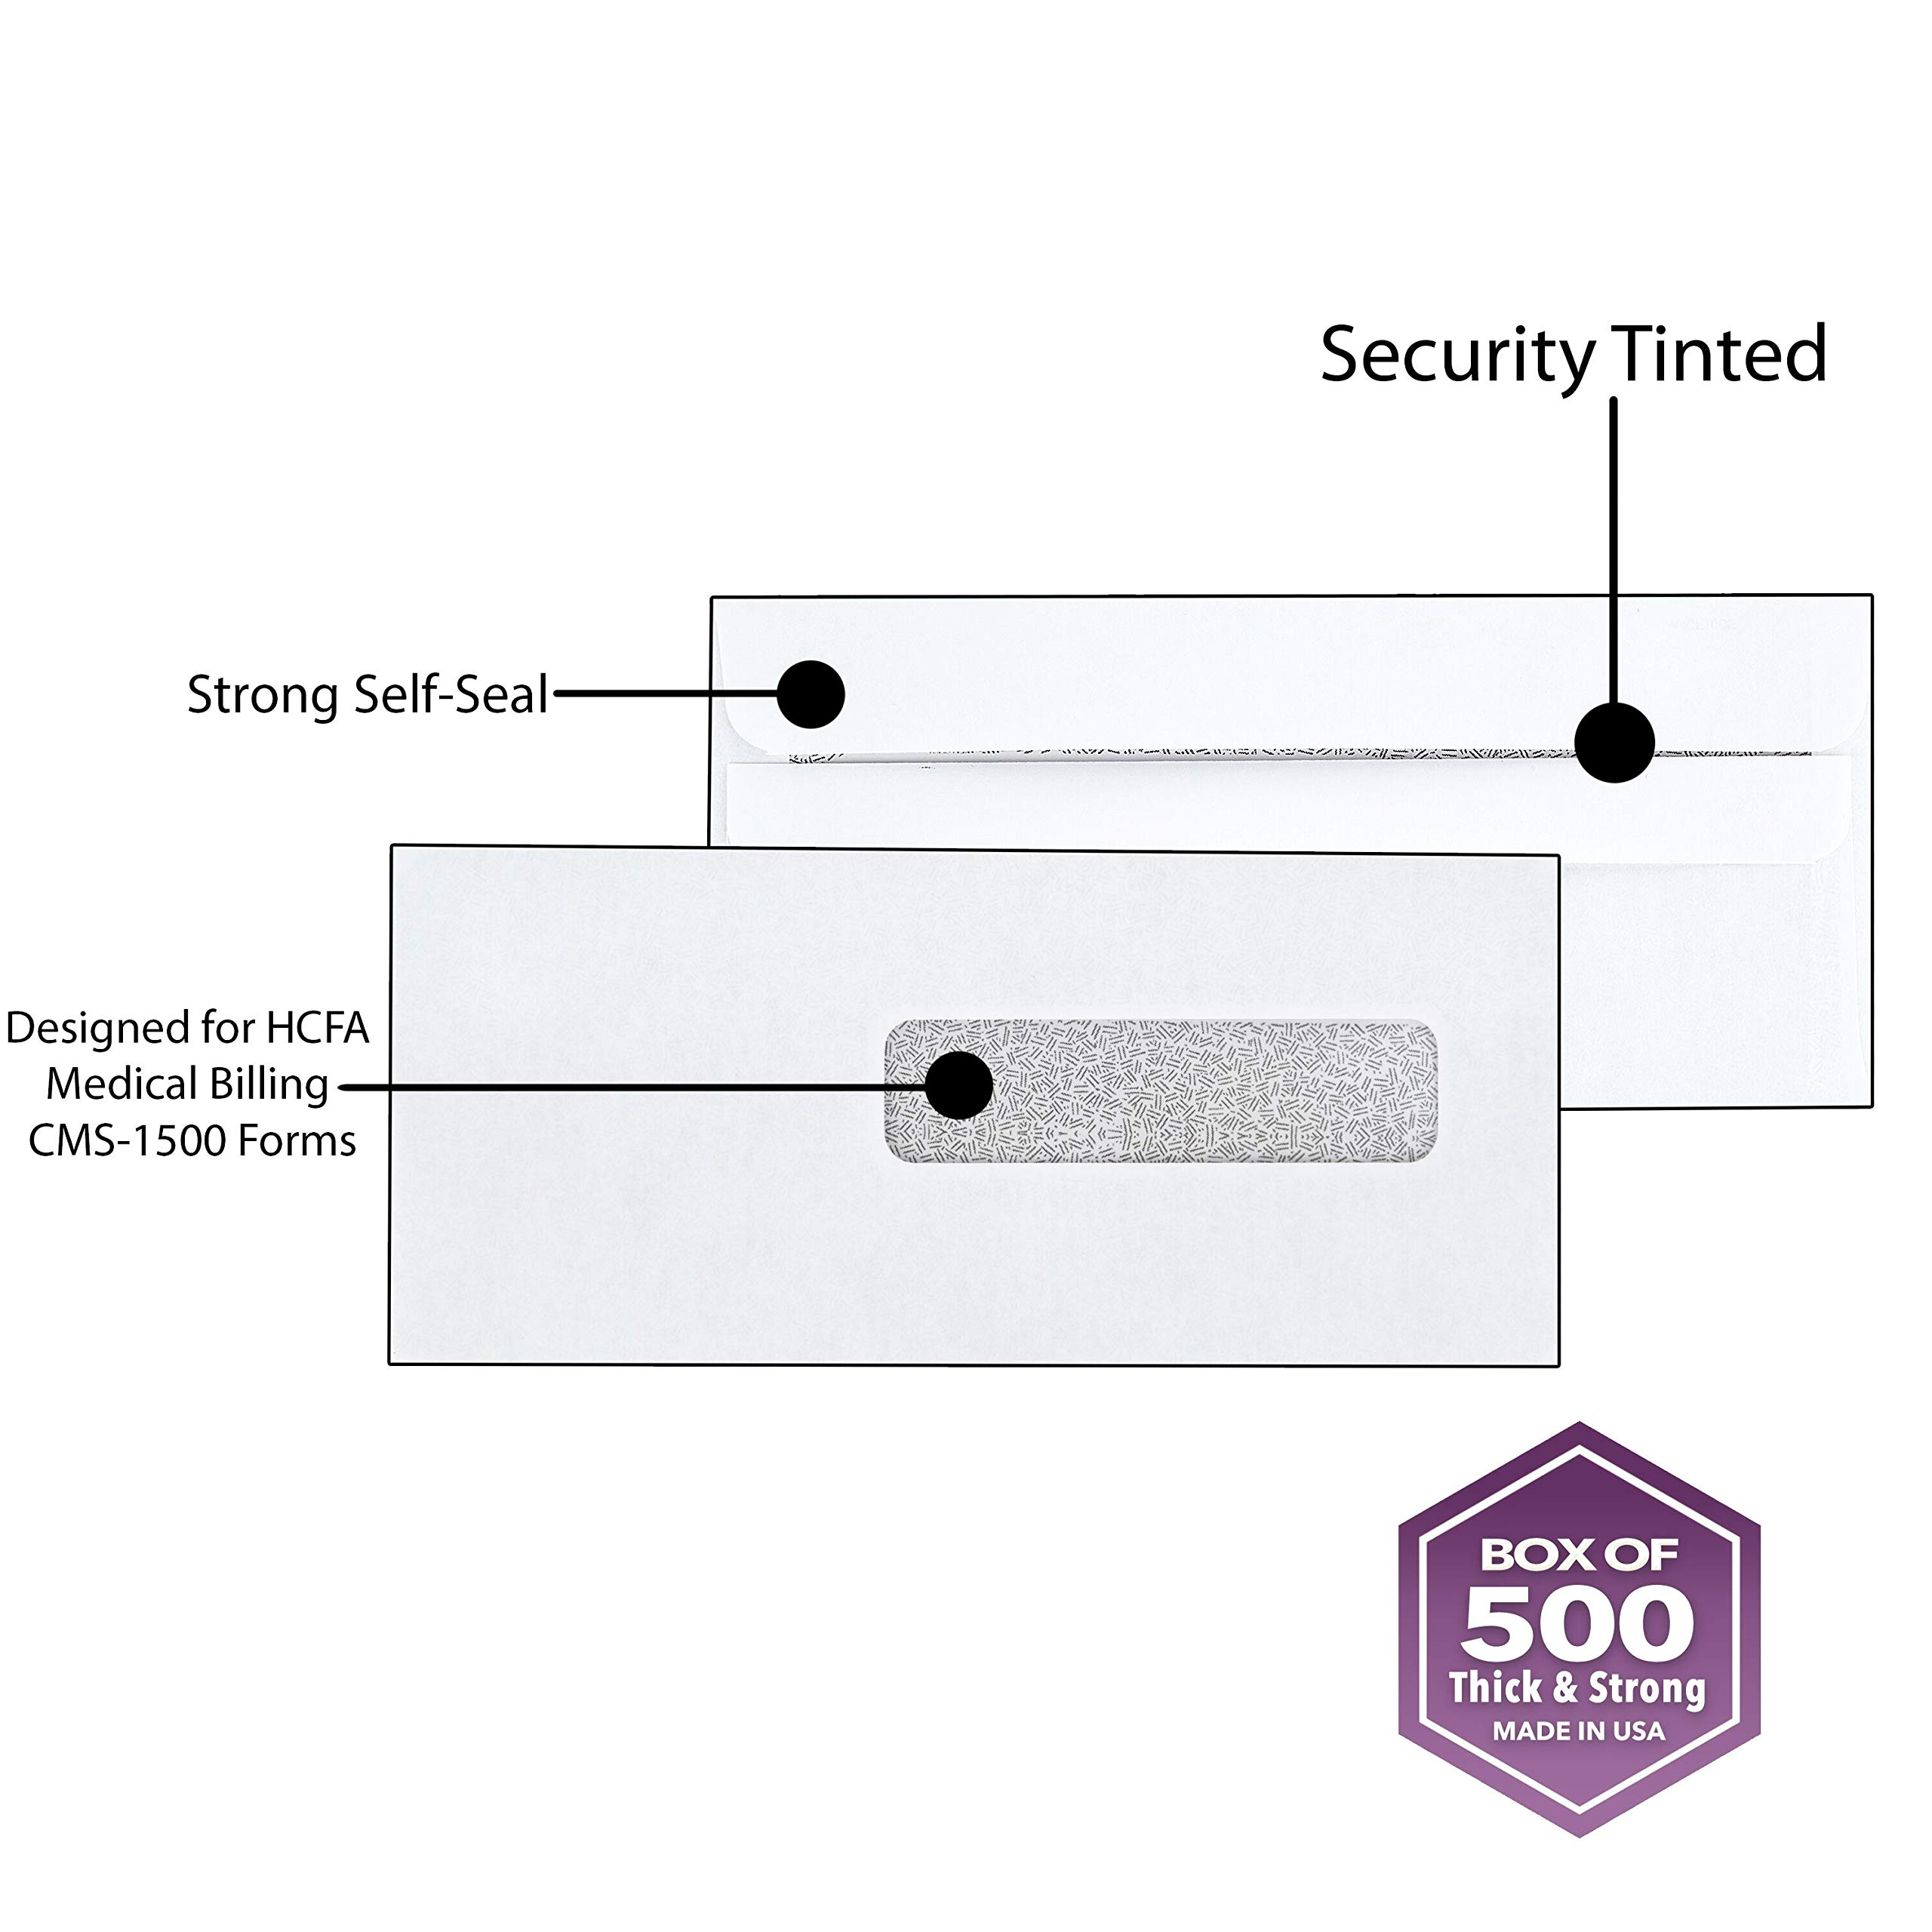 500 Claim Forms Envelopes, for Medical Billing Insurance Claim HCFA-1508, CMS-1500 Forms, Security Inside Tinted, Self-Seal Closure~Right Window Envelope~ 9 1/2'' X 4 1/8 Pack of 500 by SuitEase